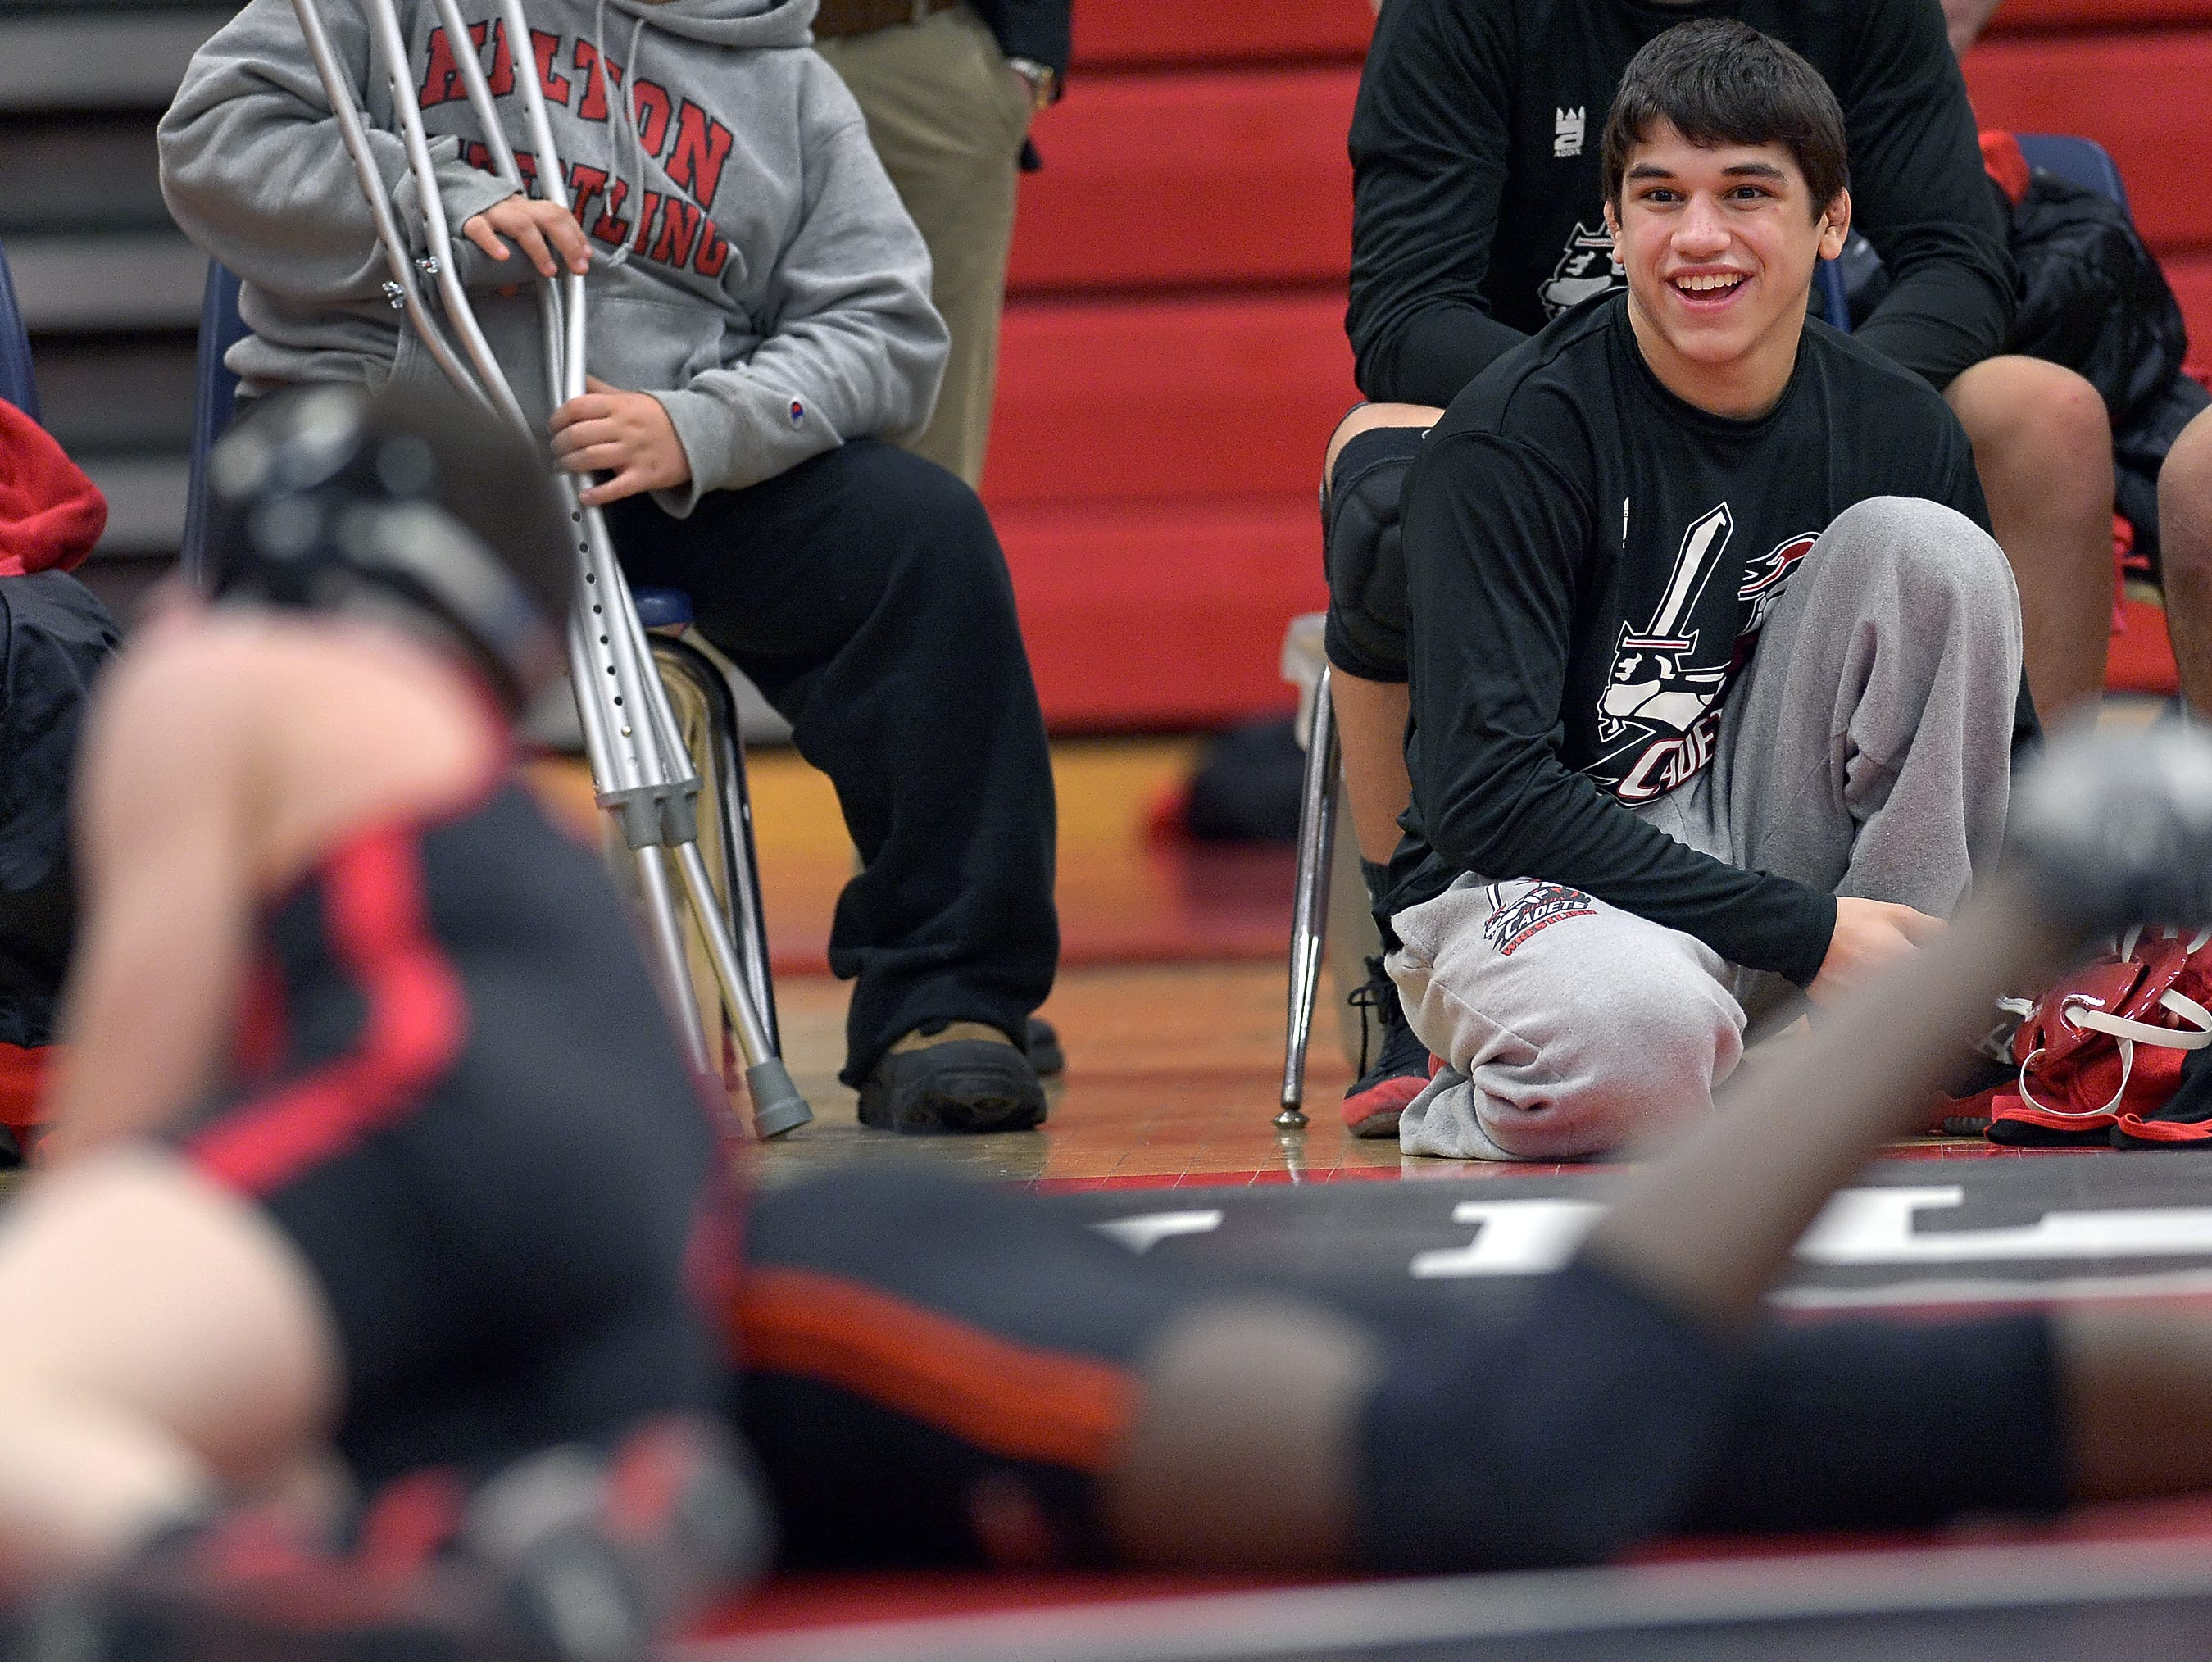 Hilton's Yianni Diakomihalis, right, whose 138 lb. match was forfeited, cheers on his teammates during regular season meet held at Hilton High School on Wednesday, January 13, 2016.